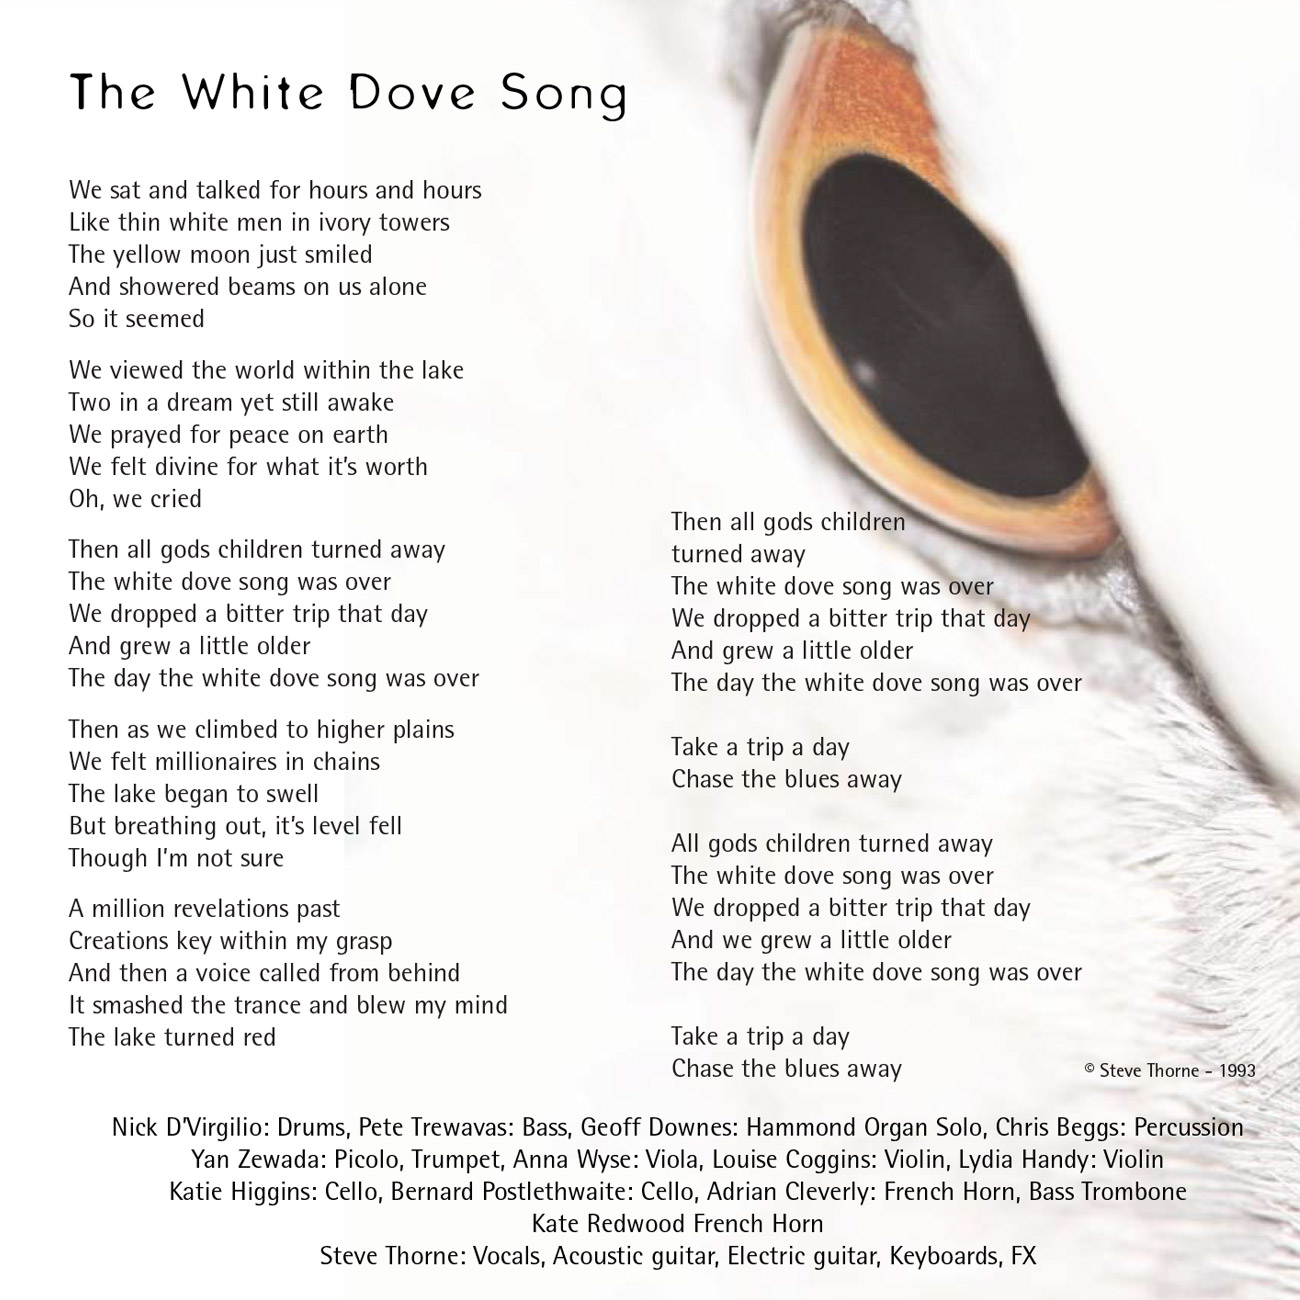 10 - The White Dove Song